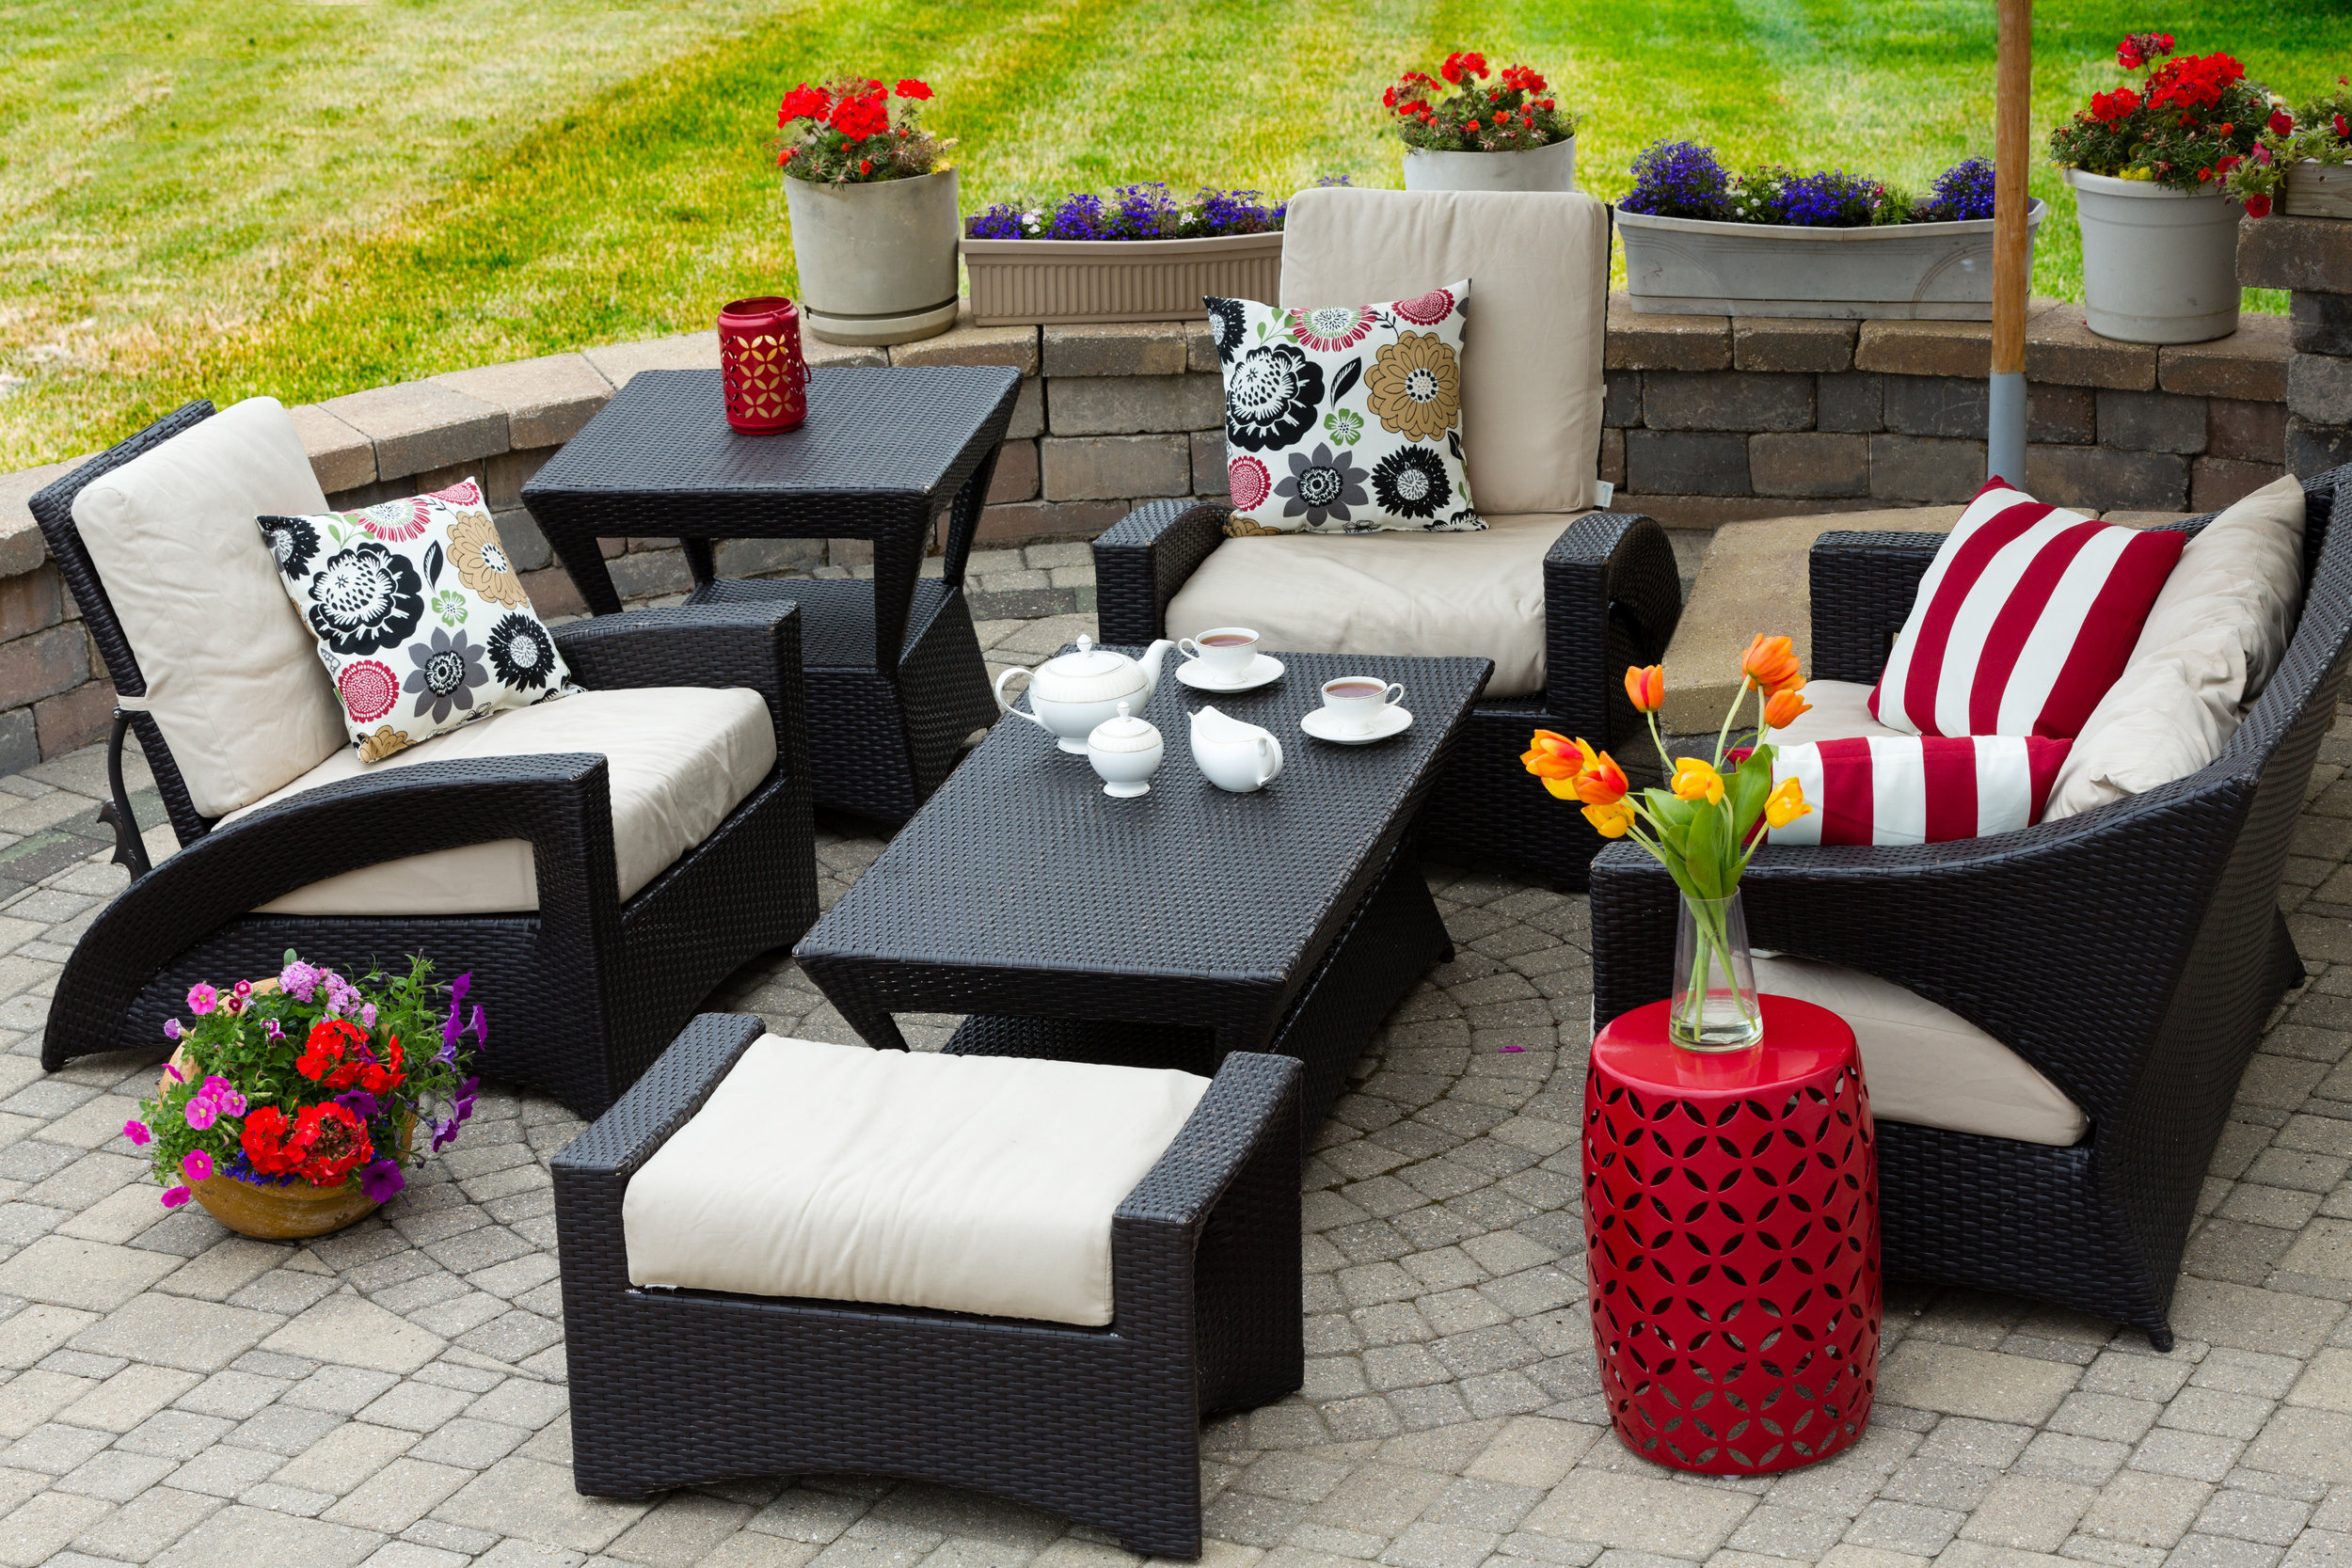 Top 6 Landscaping Ideas for Farmhouse Style Homes on Long Island, NY